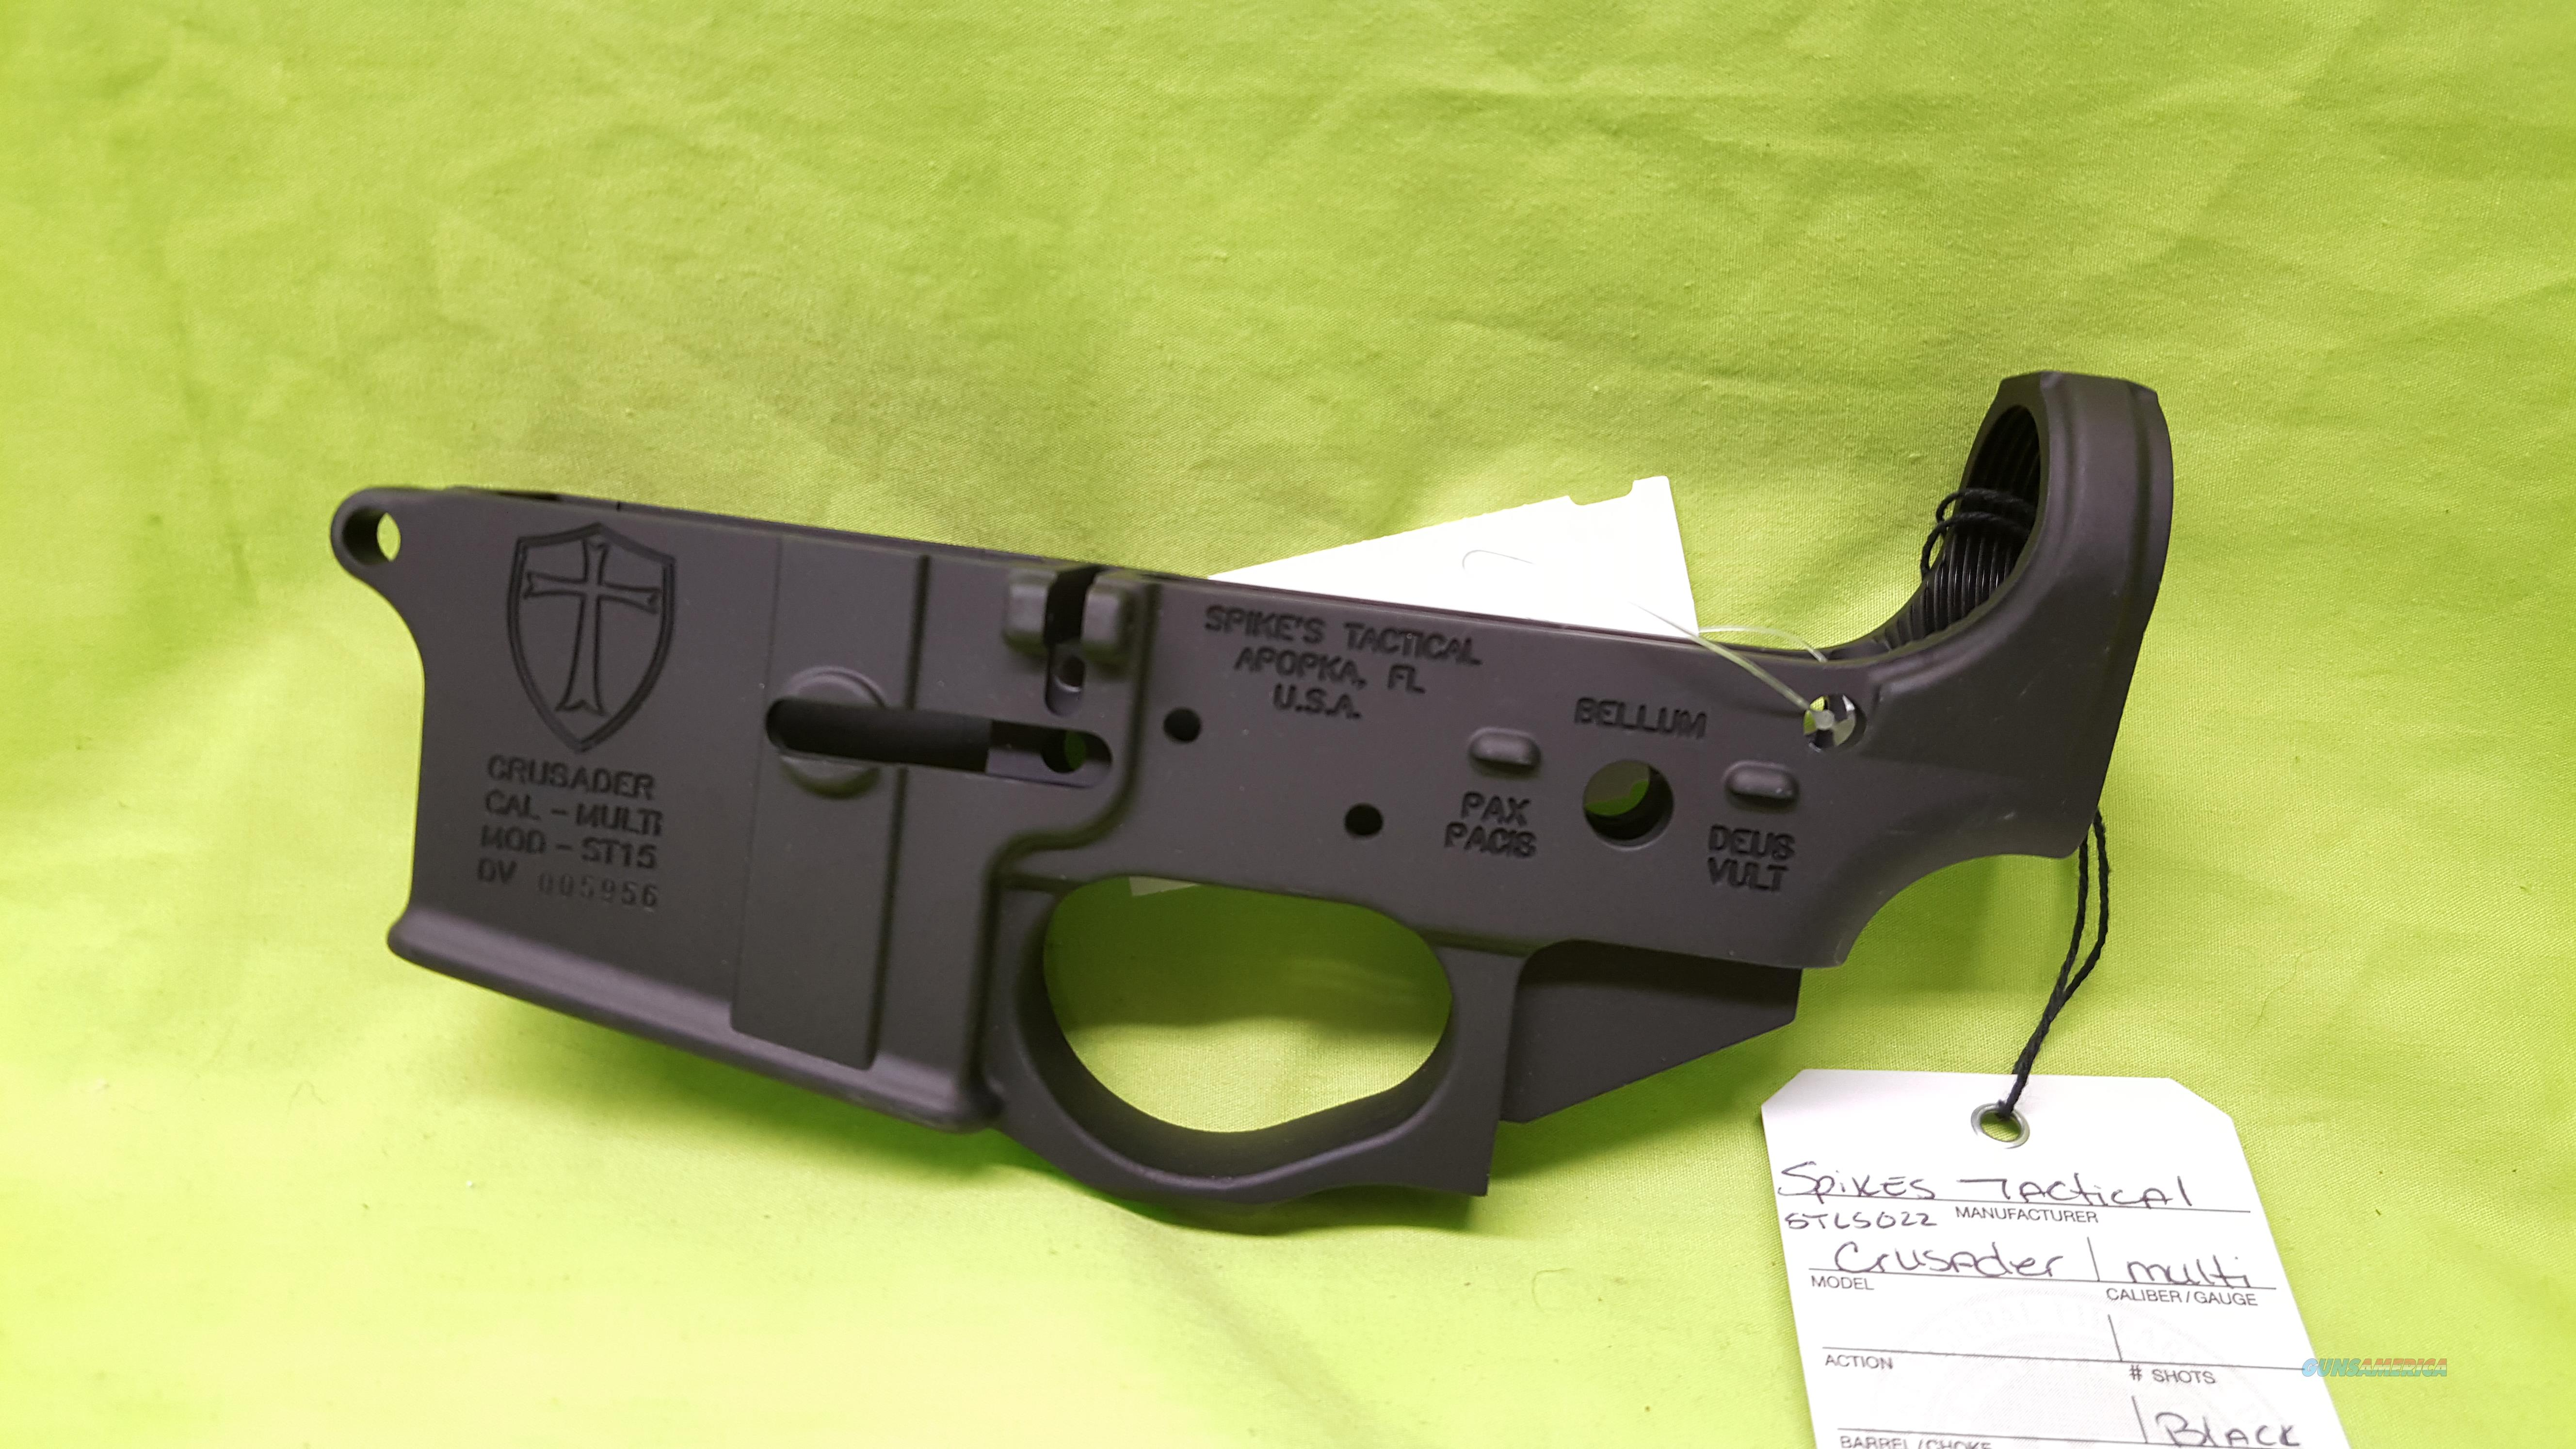 SPIKES STRIPPED LOWER CRUSADER AR 15 5.56 .223 MULTI  Guns > Rifles > AR-15 Rifles - Small Manufacturers > Lower Only